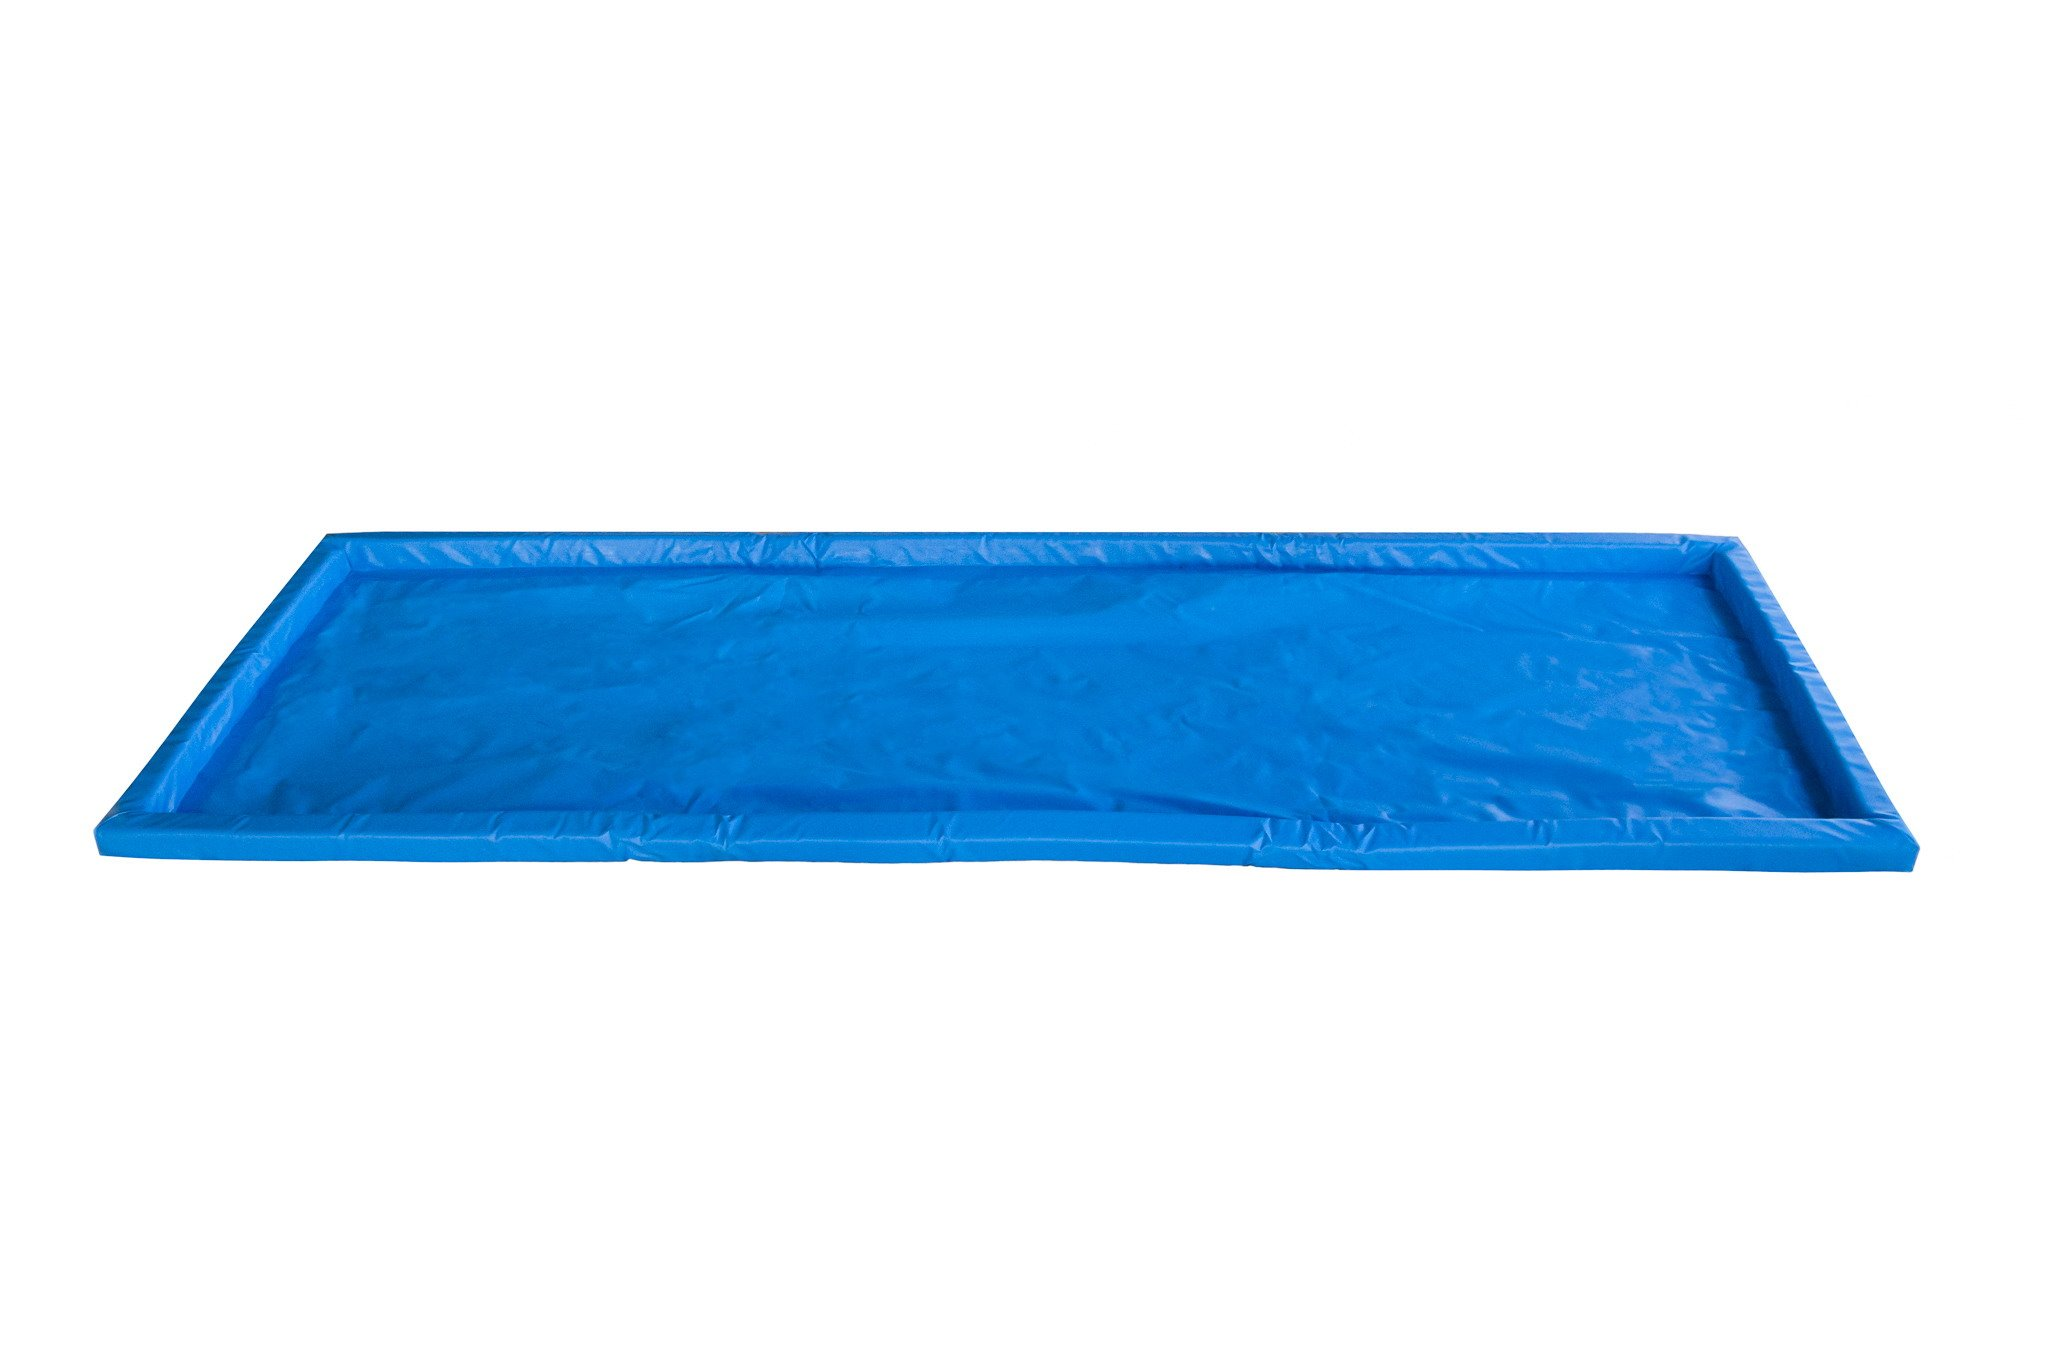 Liverpool Horse Jump - Water Jump - Portable - Horse Training Aid by Fields Outdoor Supplies